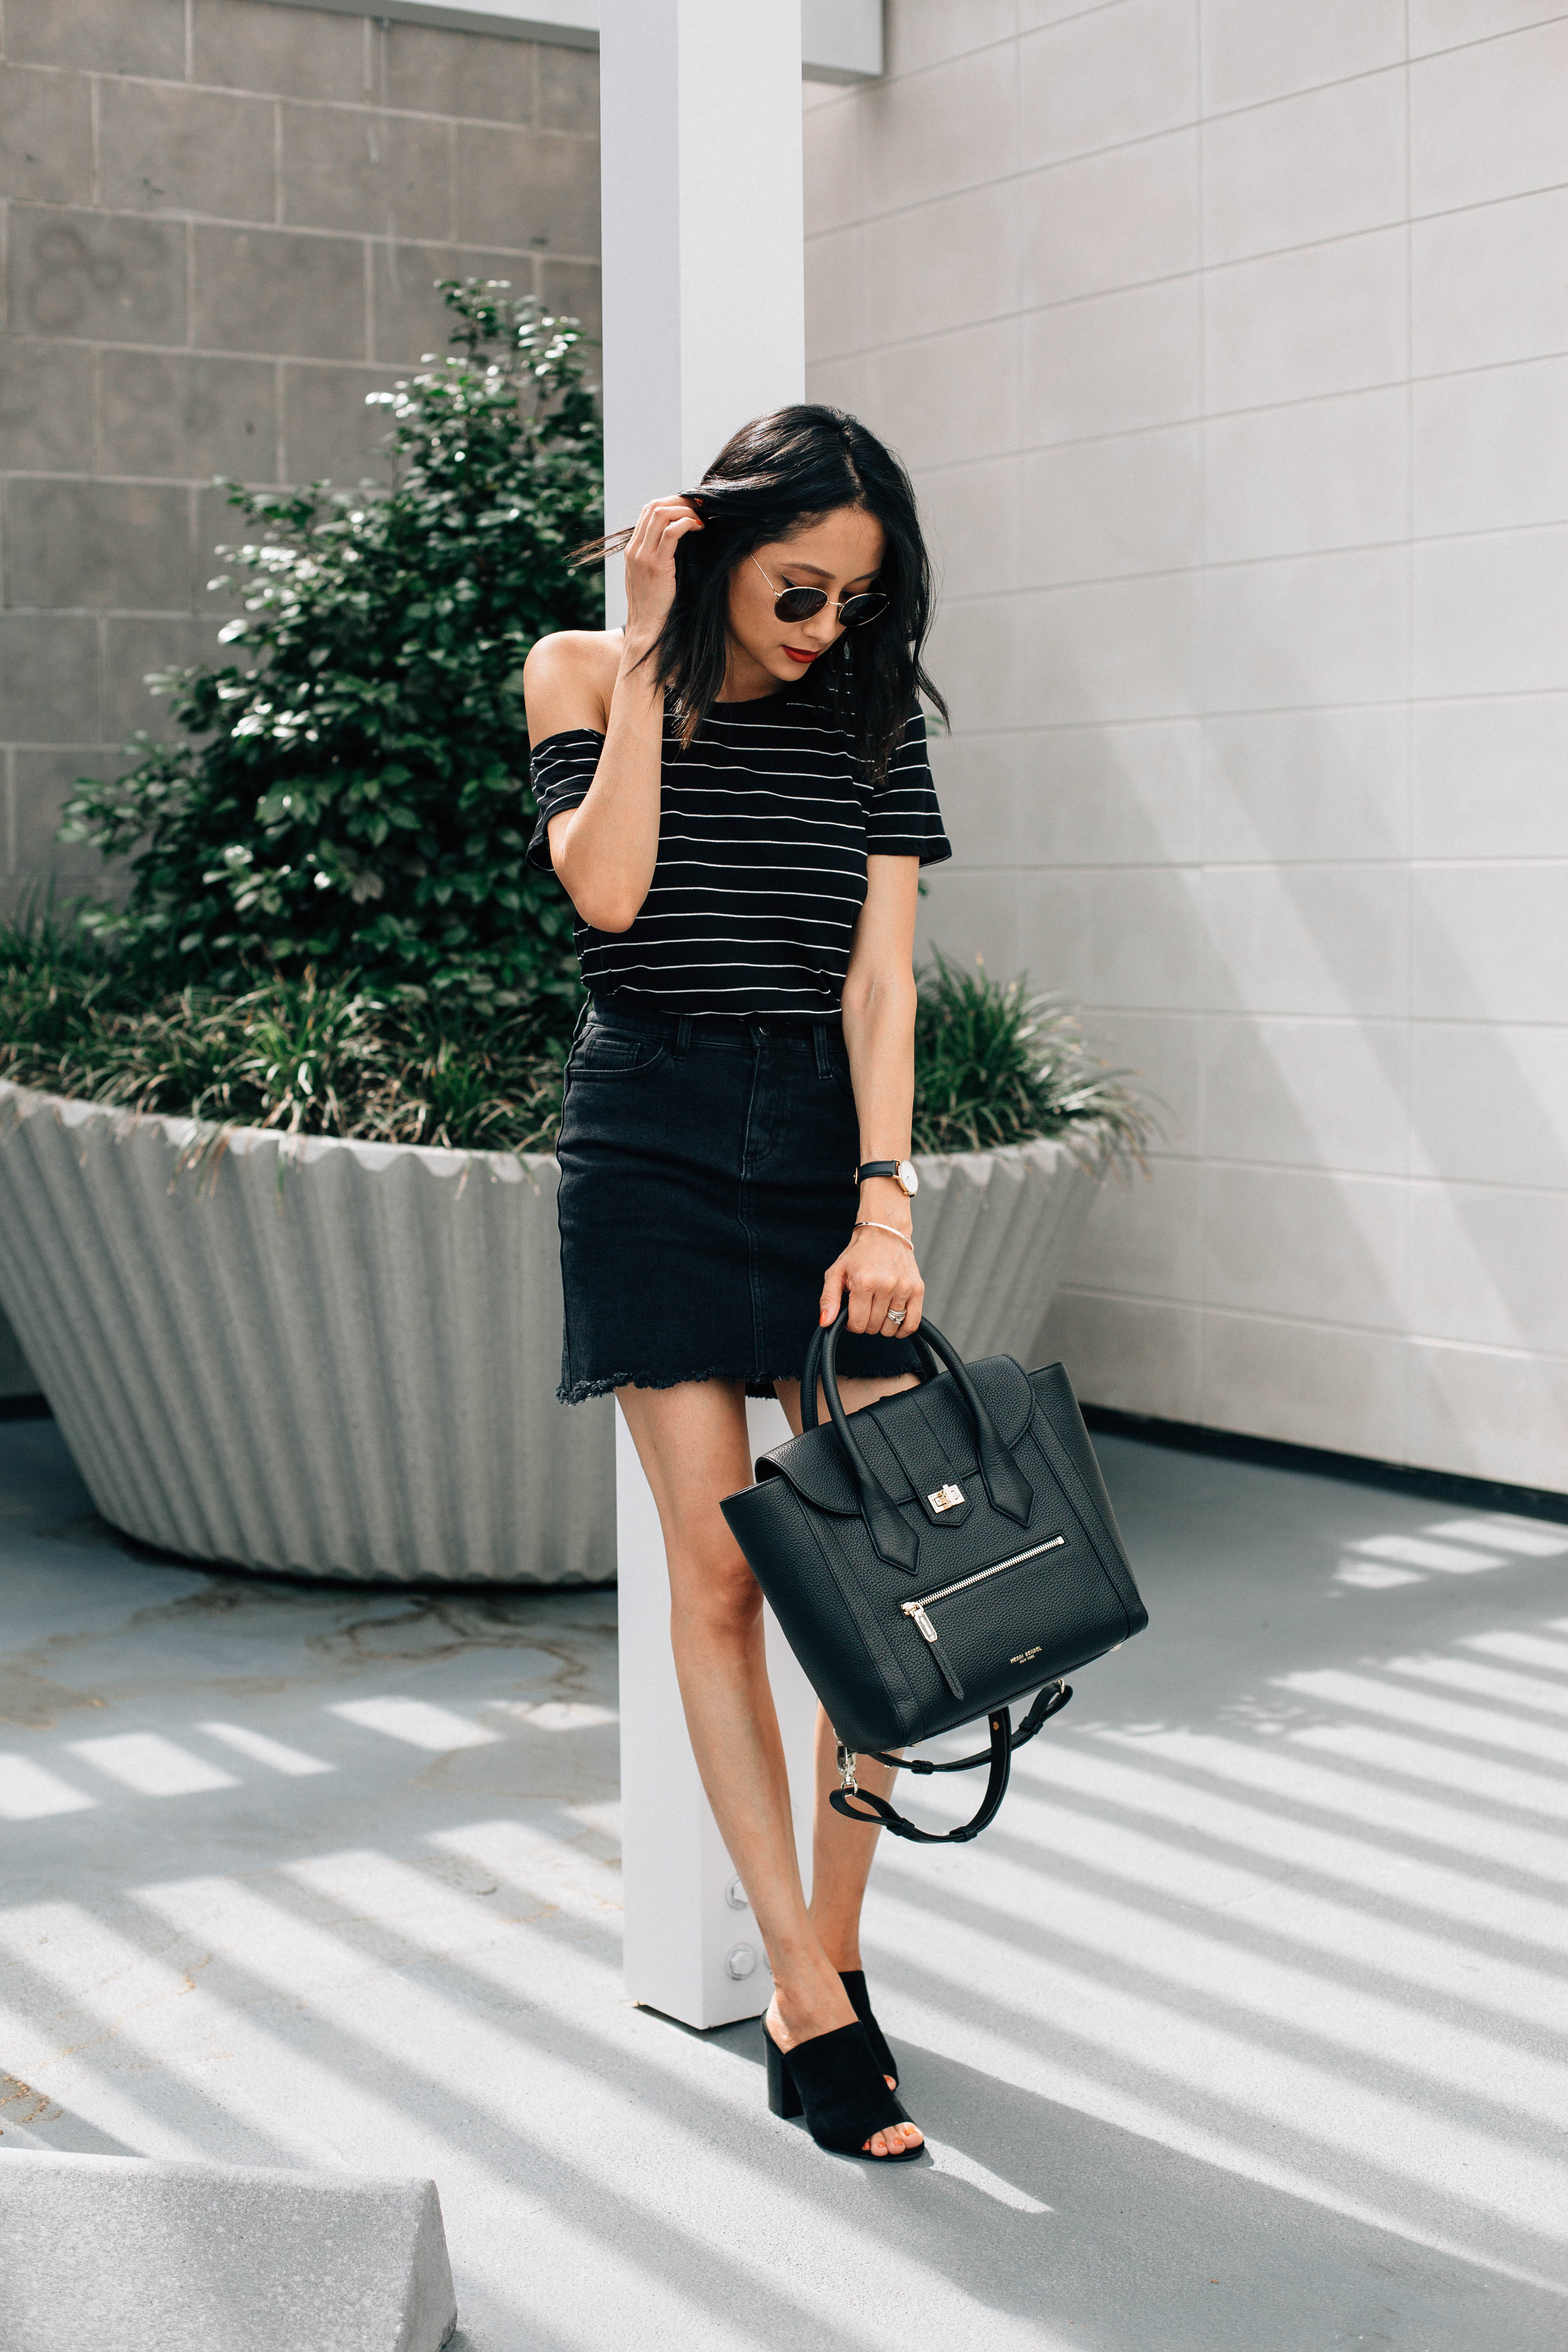 Lifestyle blogger Lilly Beltran wearing and edgy look wit a black denim skirt and striped tee